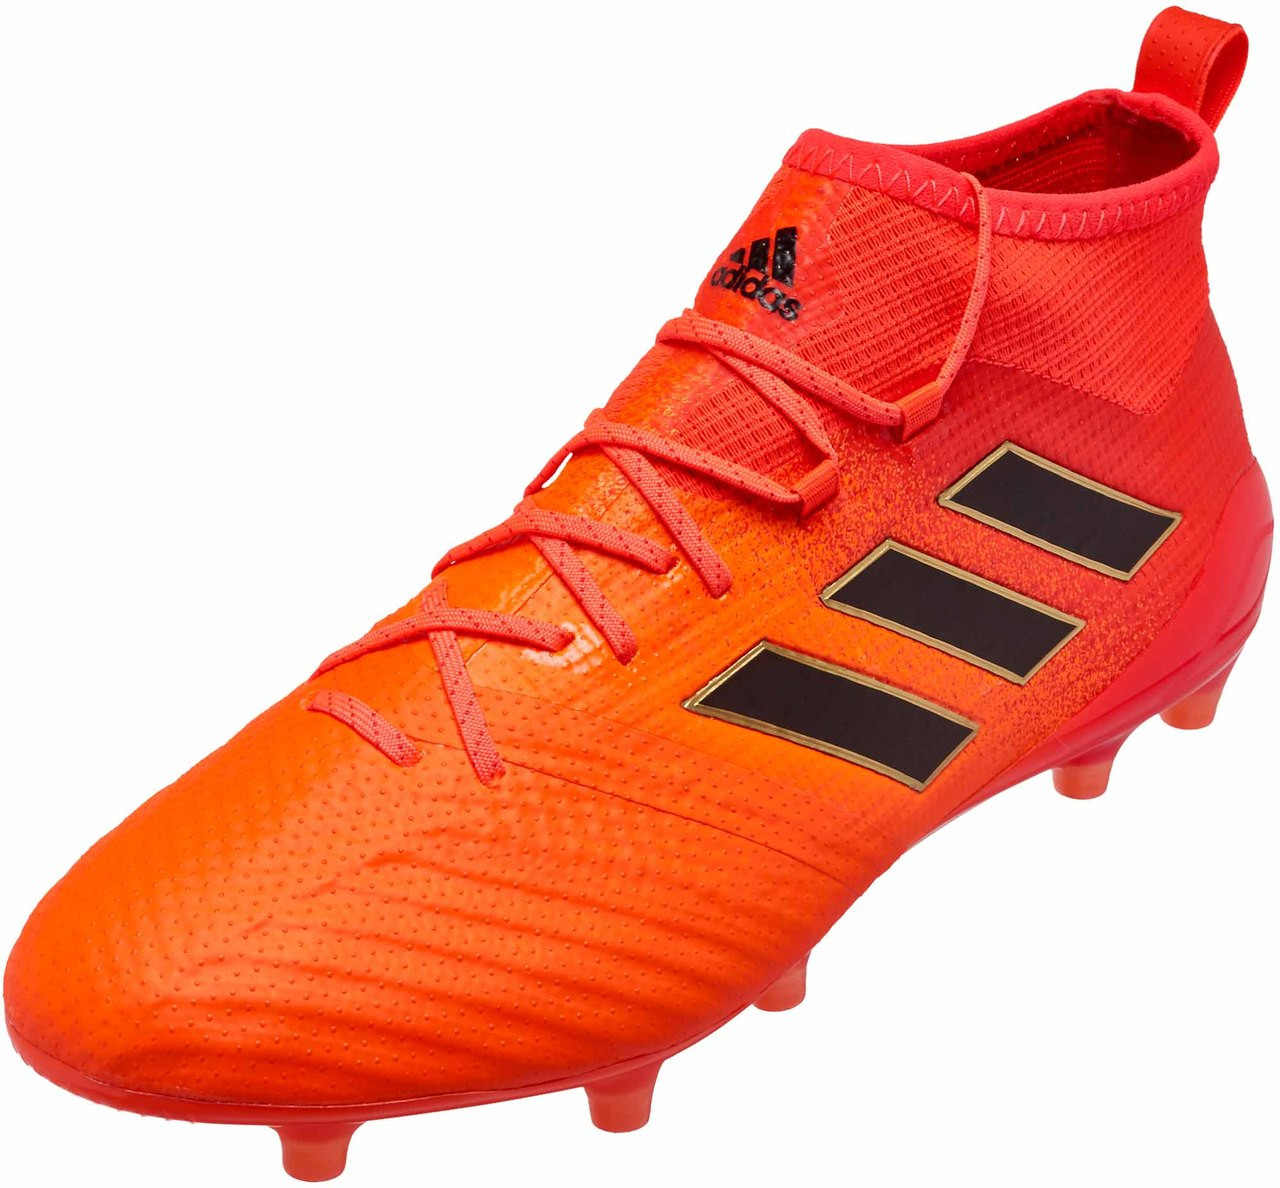 c19f1f9521f1 Adidas Ace 17.1 FG - Solar Orange Core Black Solar Red (030319) - ohp soccer